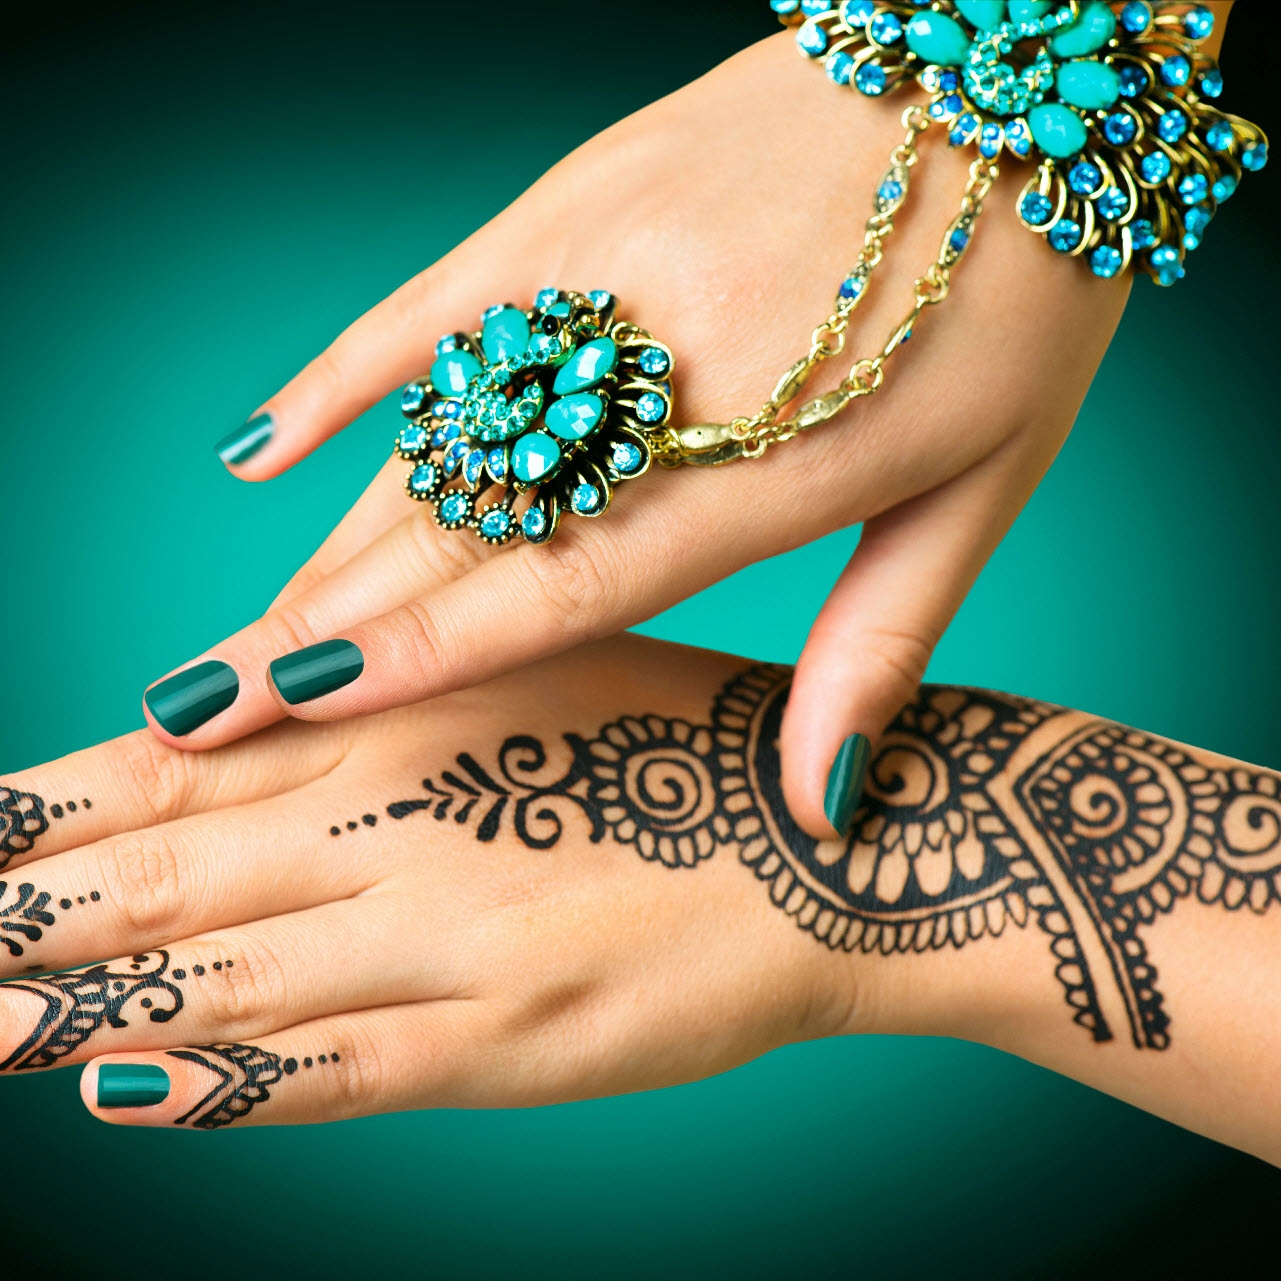 Ultra Beauty Salon in Whyteleafe - Mendhi & Henna